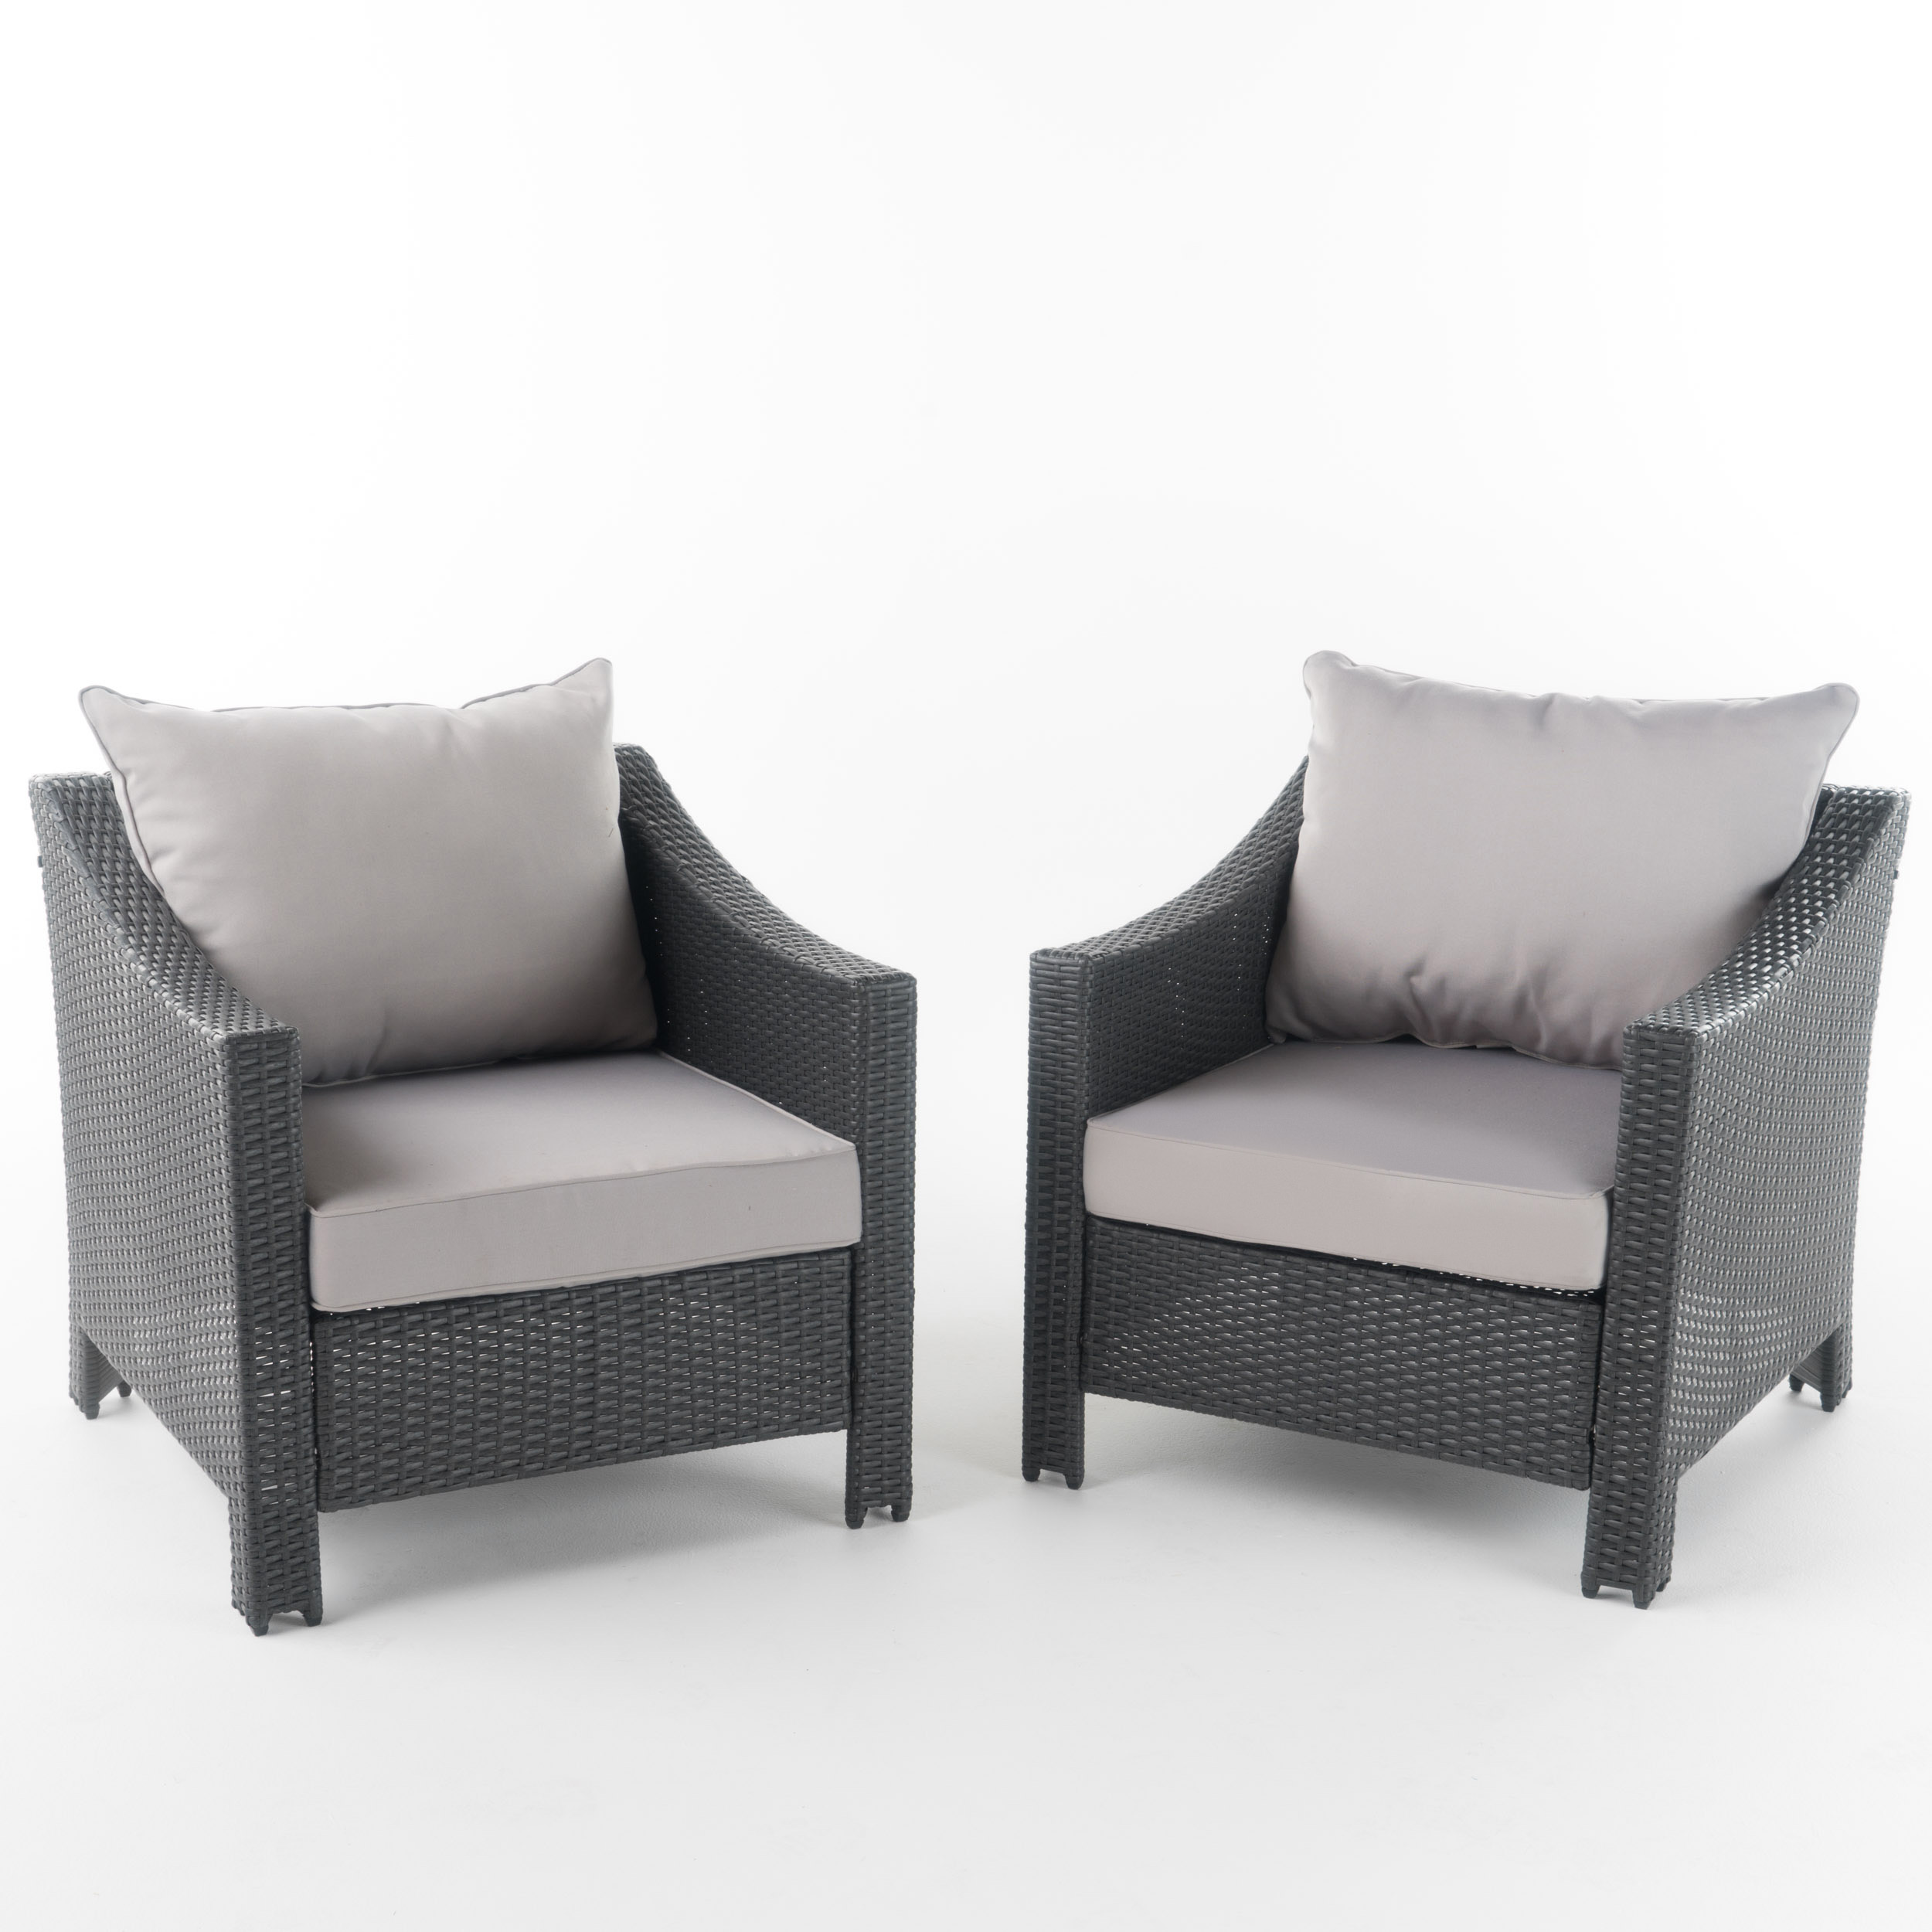 Cortez Outdoor Wicker Club Chair w/ Water-Resistant Fabric Cushions, Set of 2, Grey/ Silver